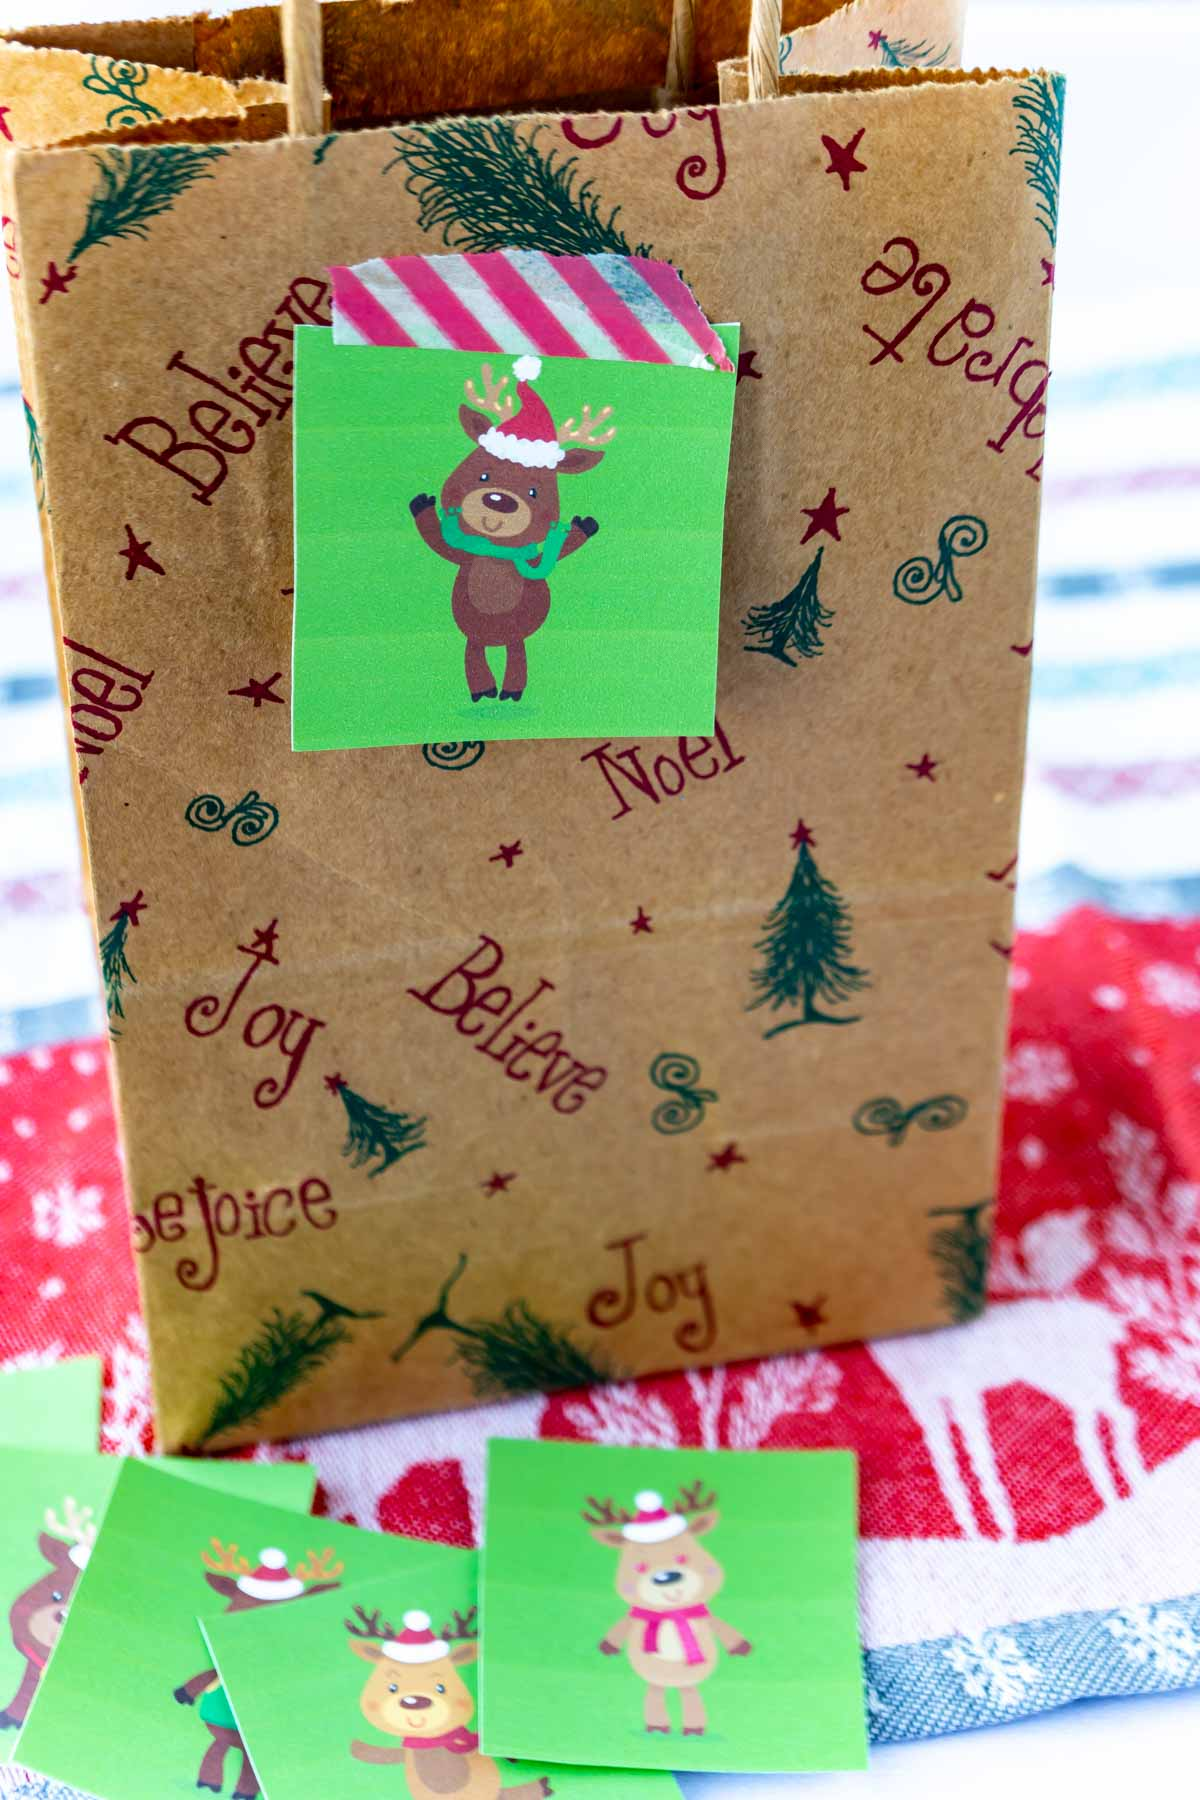 Brown paper bag with a reindeer hunt card on it